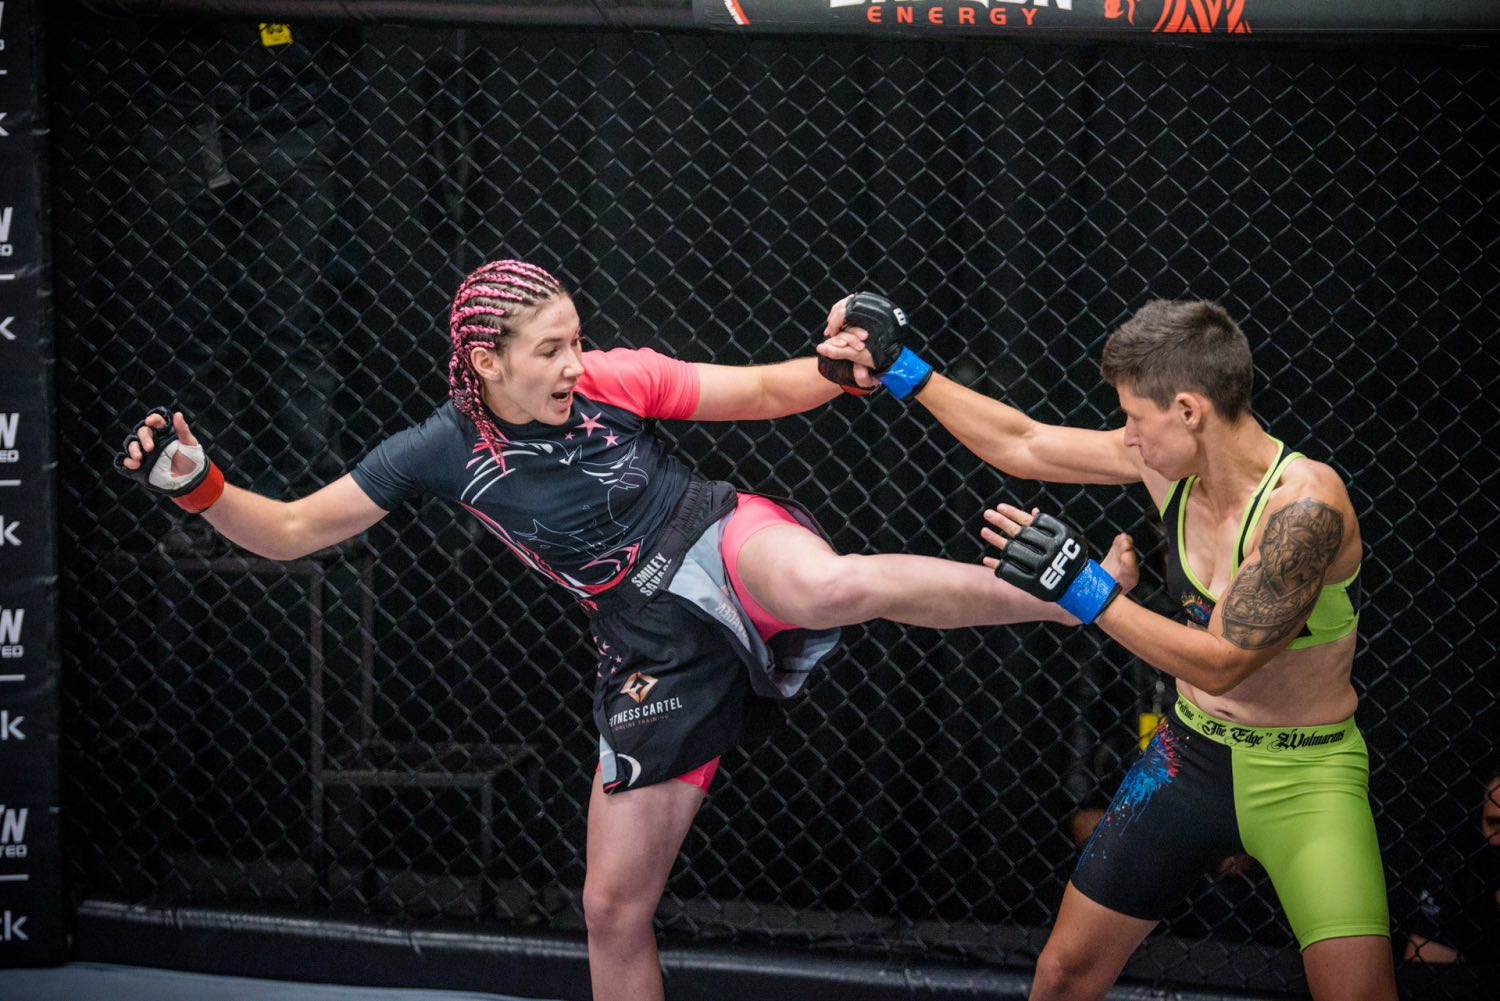 After a 14 month hiatus, Mixed Martial Arts action returned this weekend by way of EFC 85.